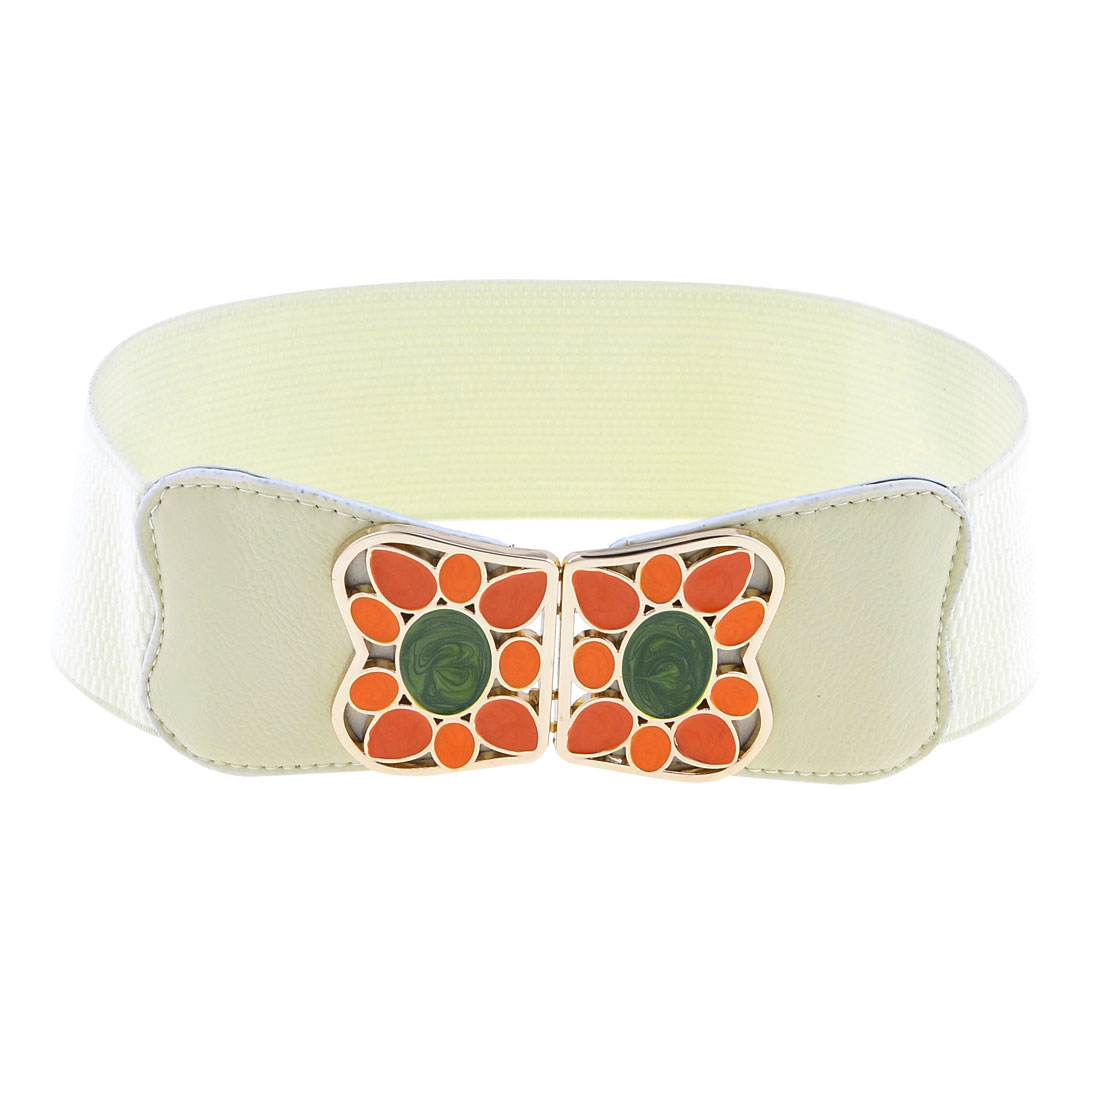 Colored Painted Metel Interlocking Buckle 6cm Width Elastic Waistband Belt White